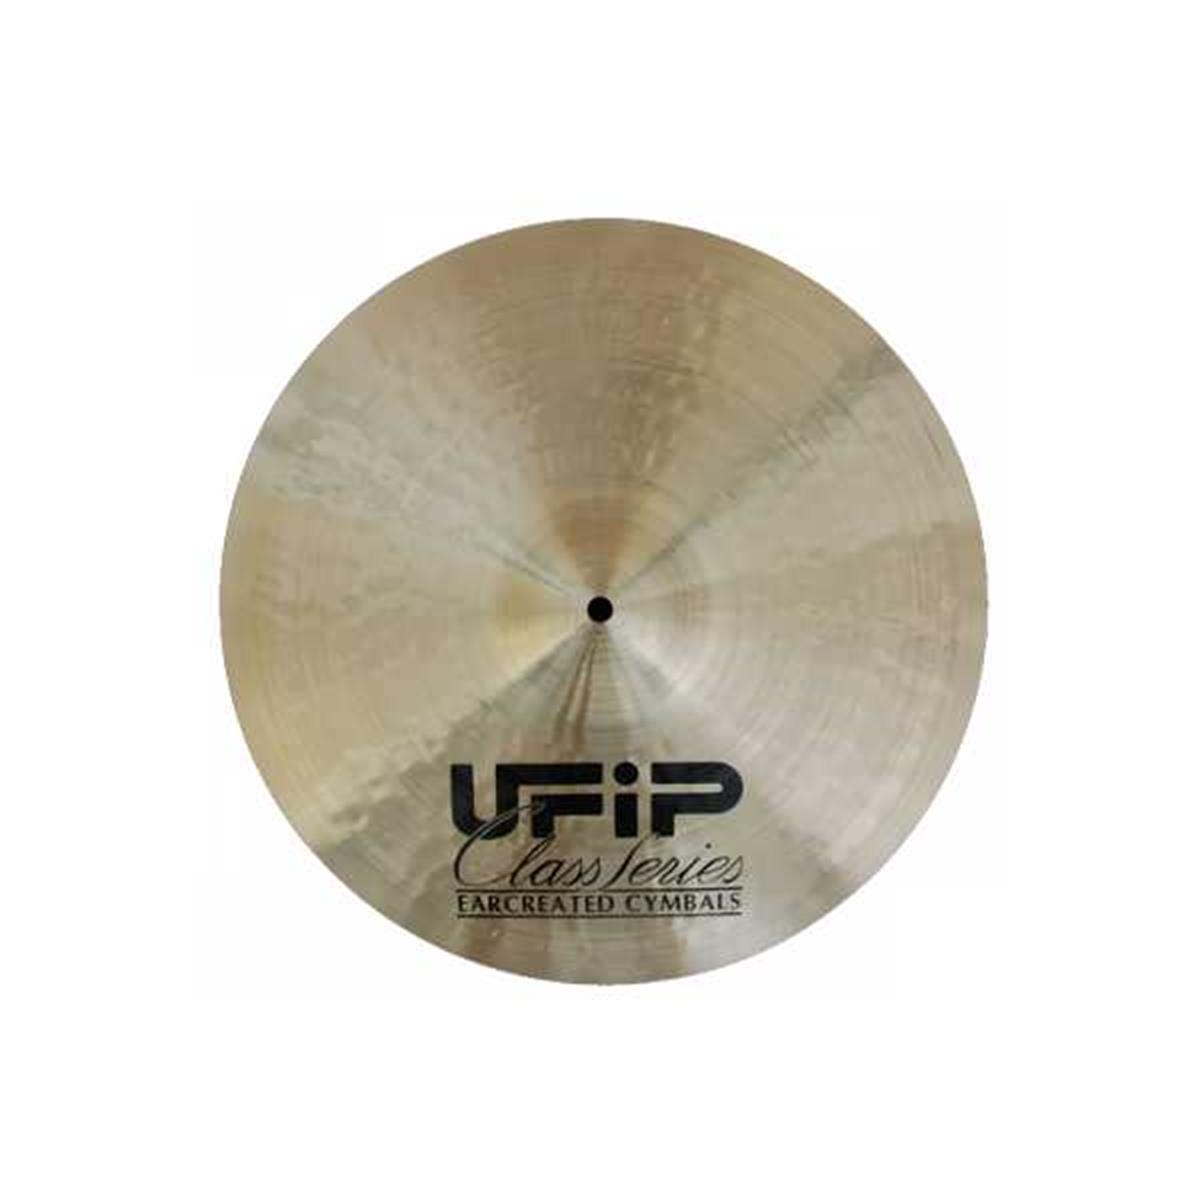 UFIP CLASS CRASH 16 MEDIUM - Batterie / Percussioni Piatti - Crash